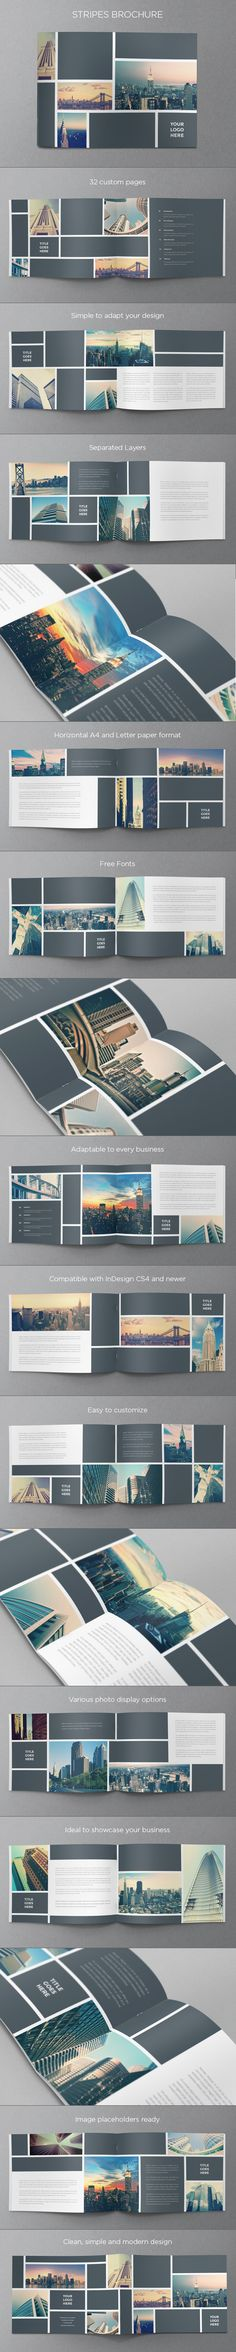 Real Estate Stripes Brochure.  Download here: http://graphicriver.net/item/real-estate-stripes-brochure/6058277